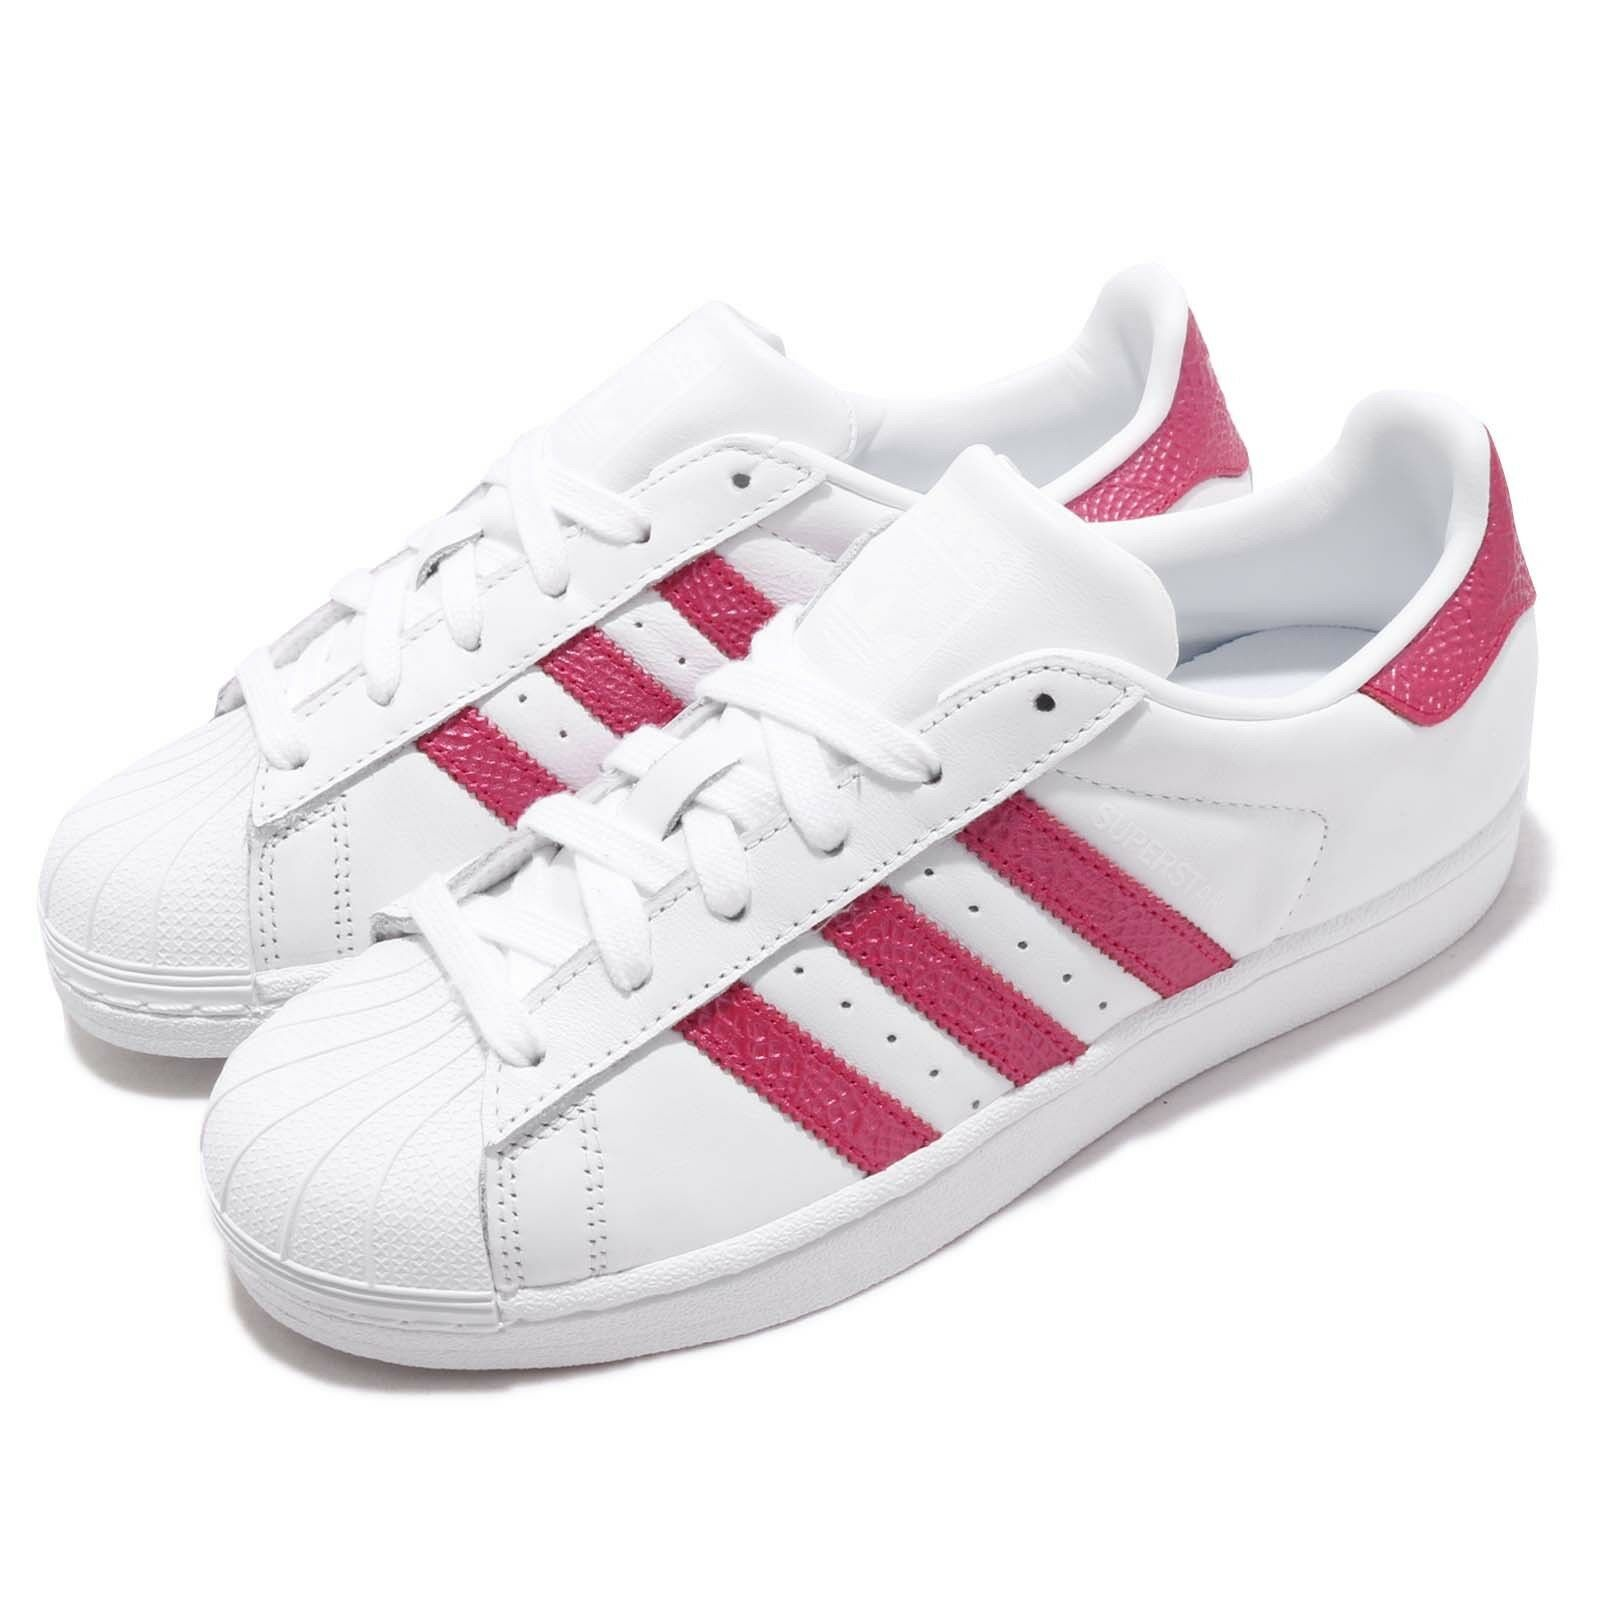 quality products low cost clearance sale adidas Originals Superstar W White Pink Women Casual Shoes ...